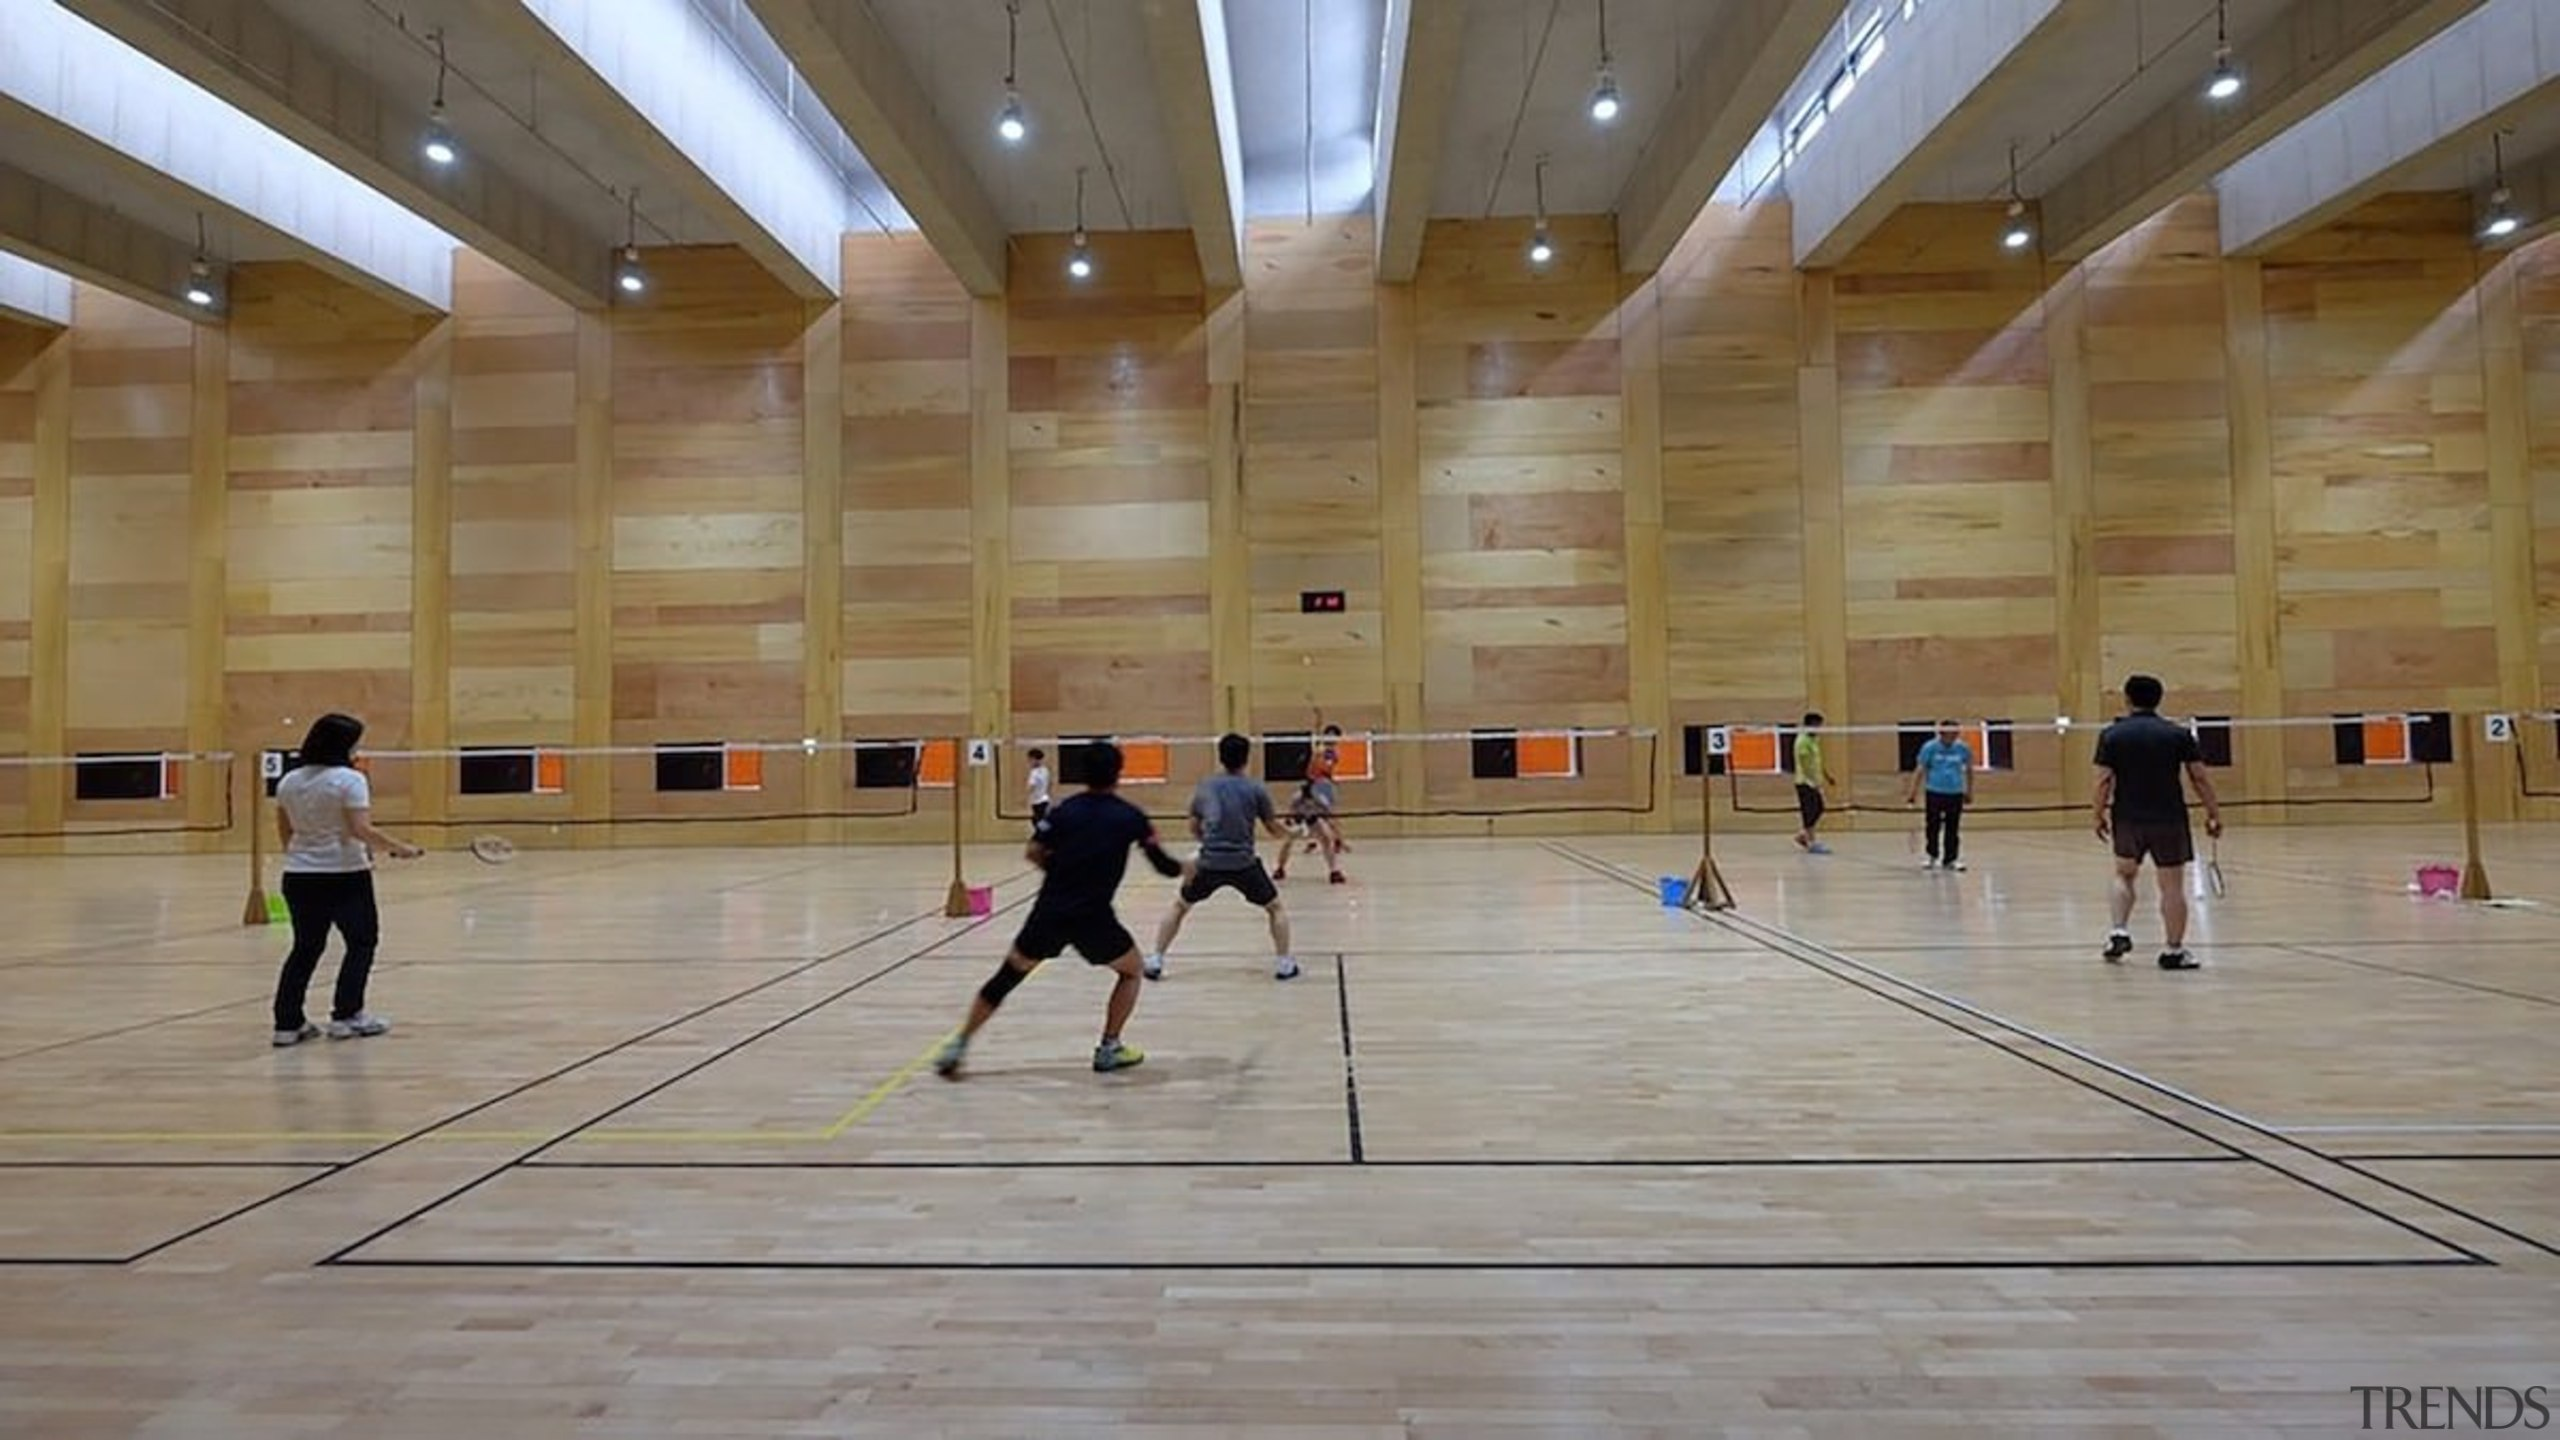 There's ample for multiple games - There's ample competition event, flooring, fun, leisure, leisure centre, sport venue, sports, structure, gray, brown